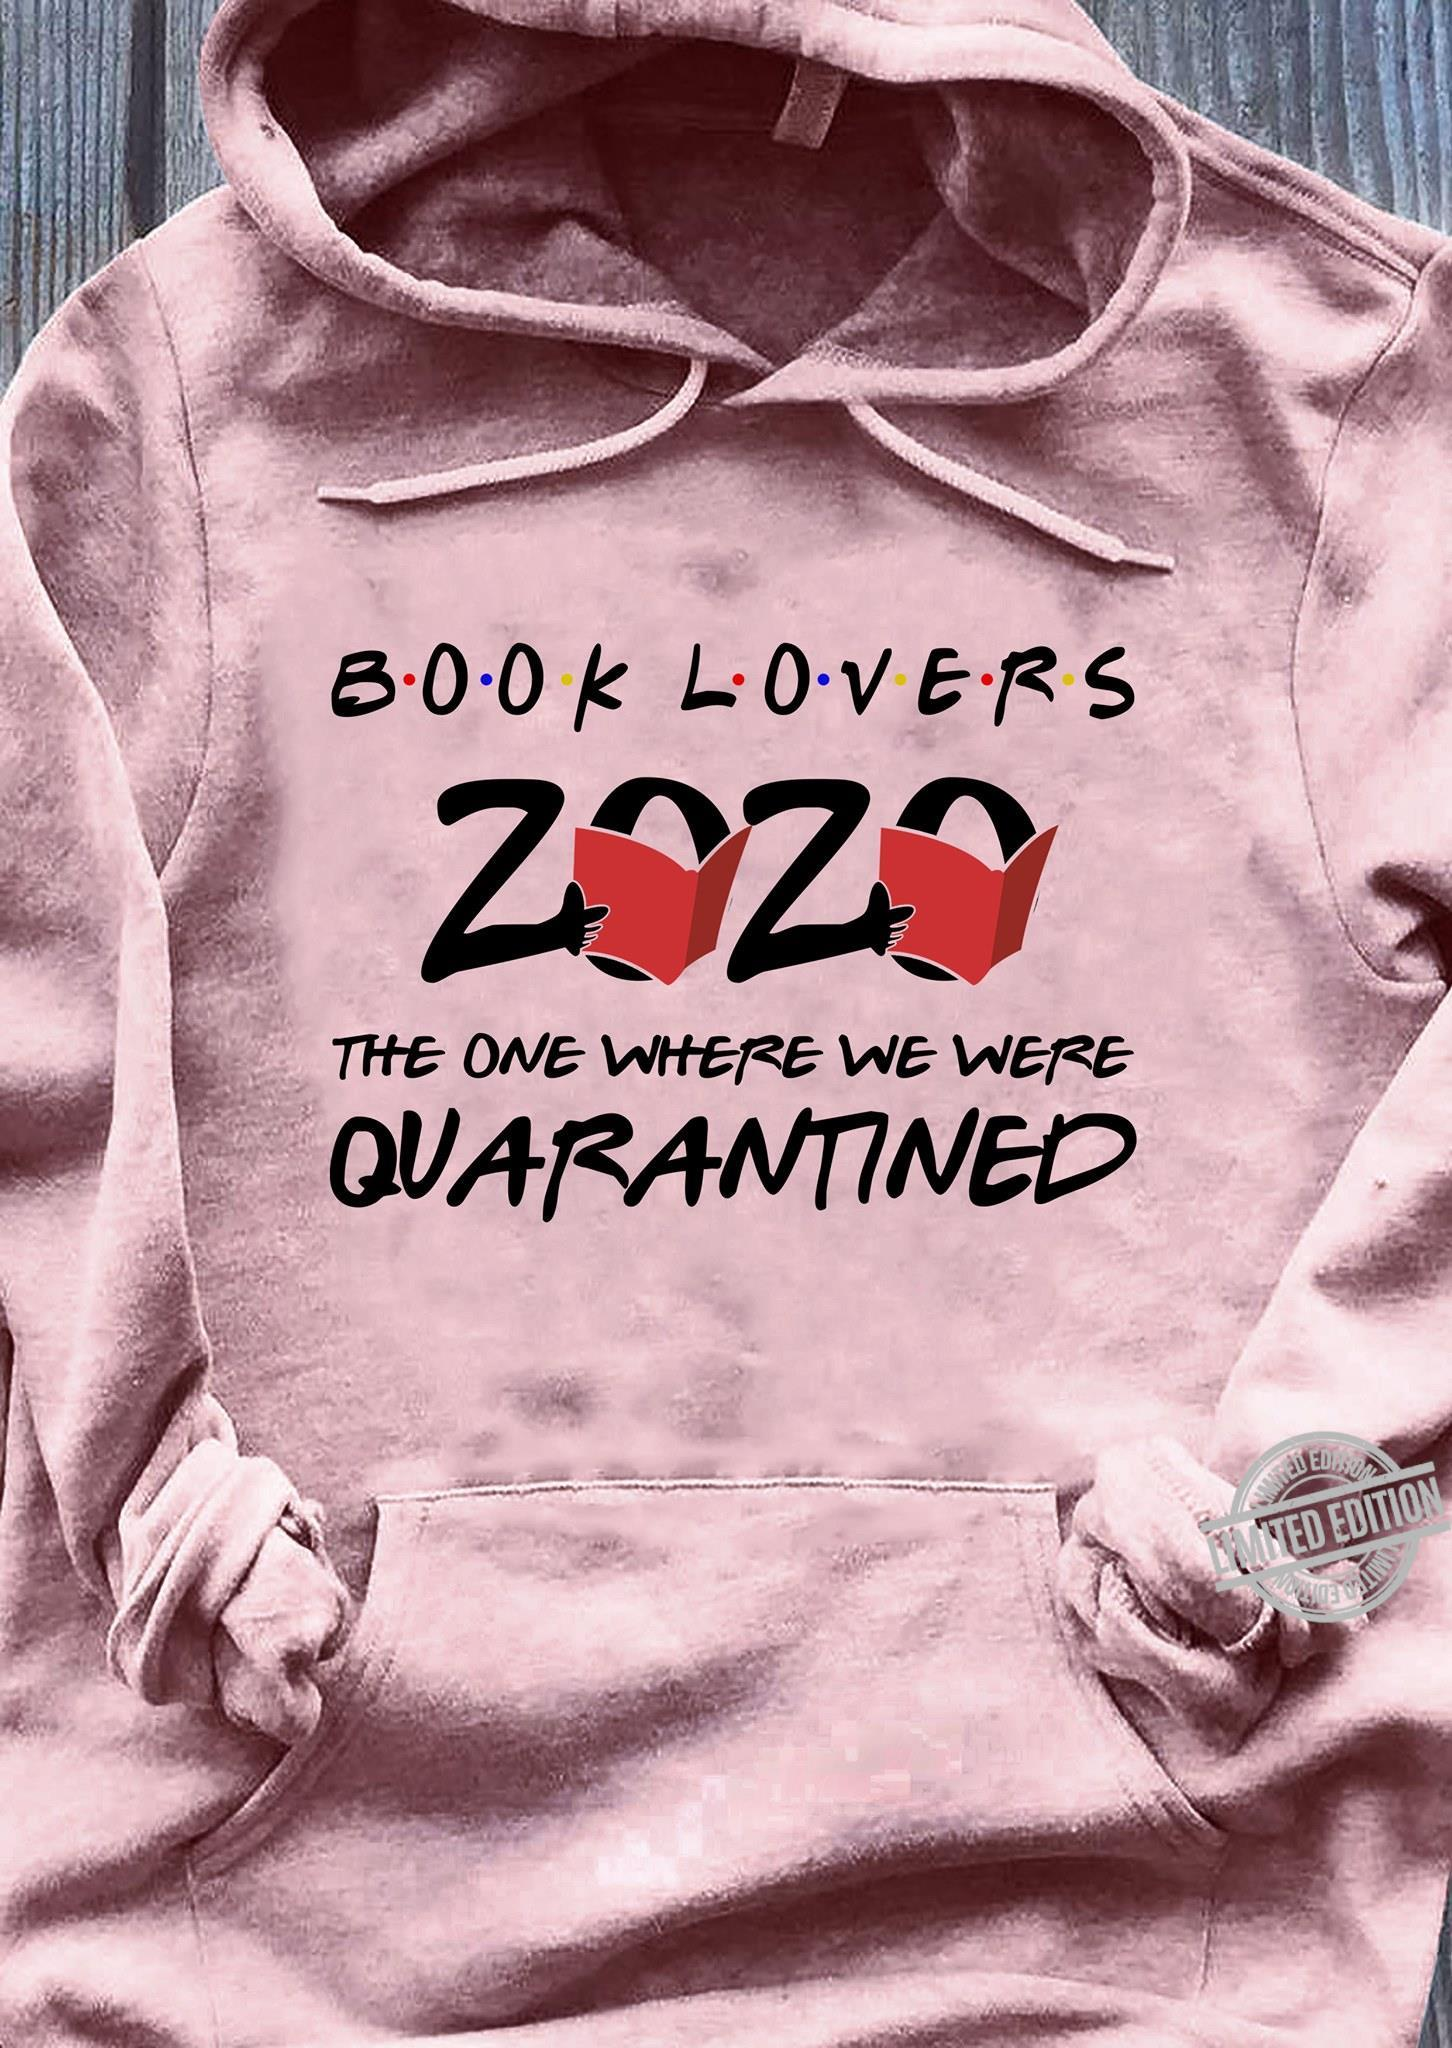 Book Lovers The One Where We Were Quarantined Shirt